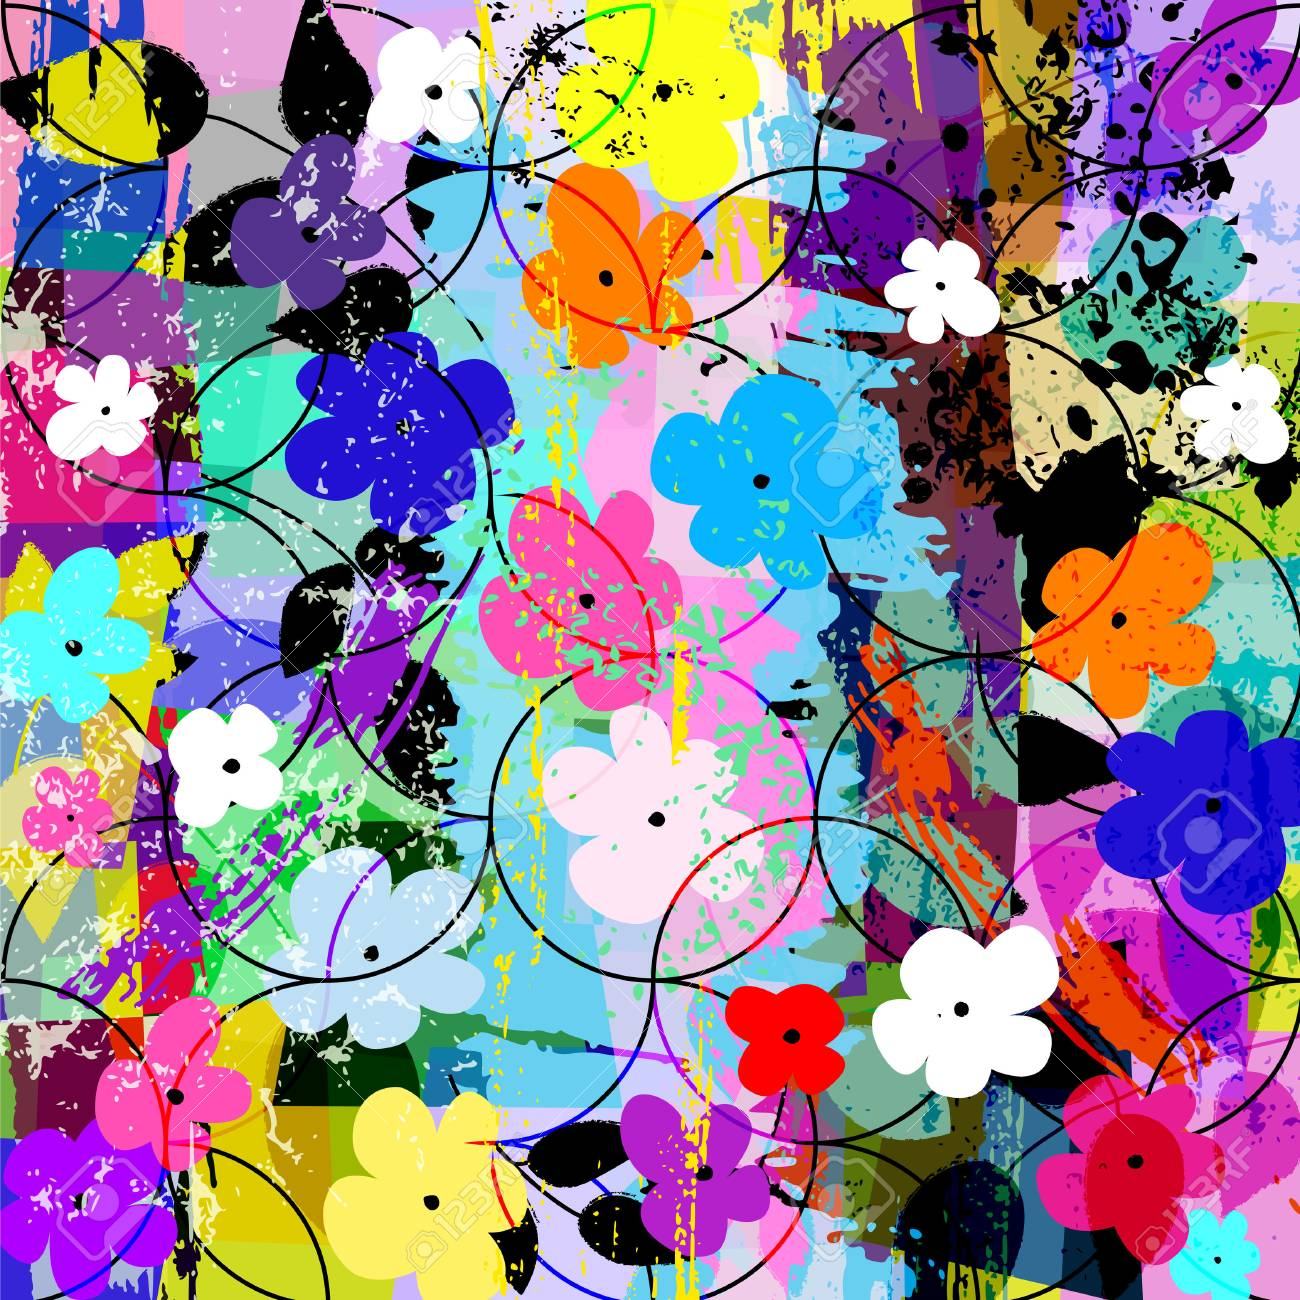 abstract flower background composition, with strokes, splashes, circles and little flowers - 68478931